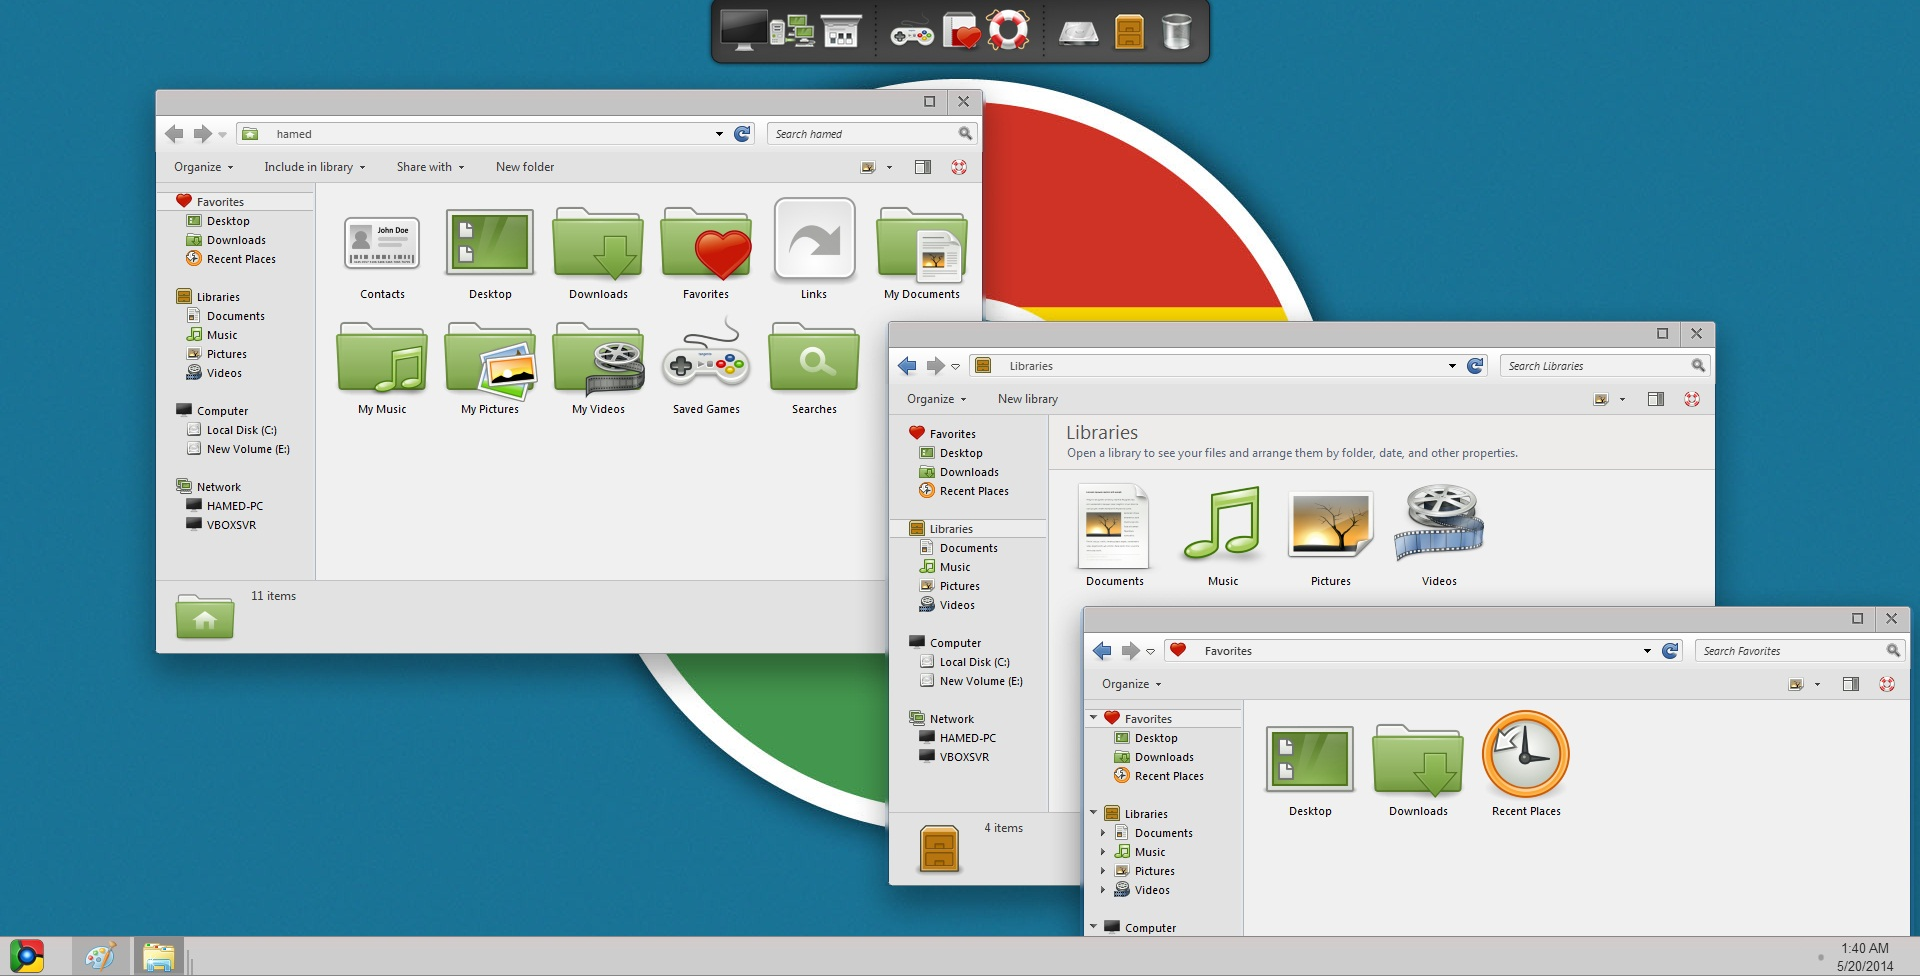 Chromium SkinPack 2.0 for Win8/8.1/7 released